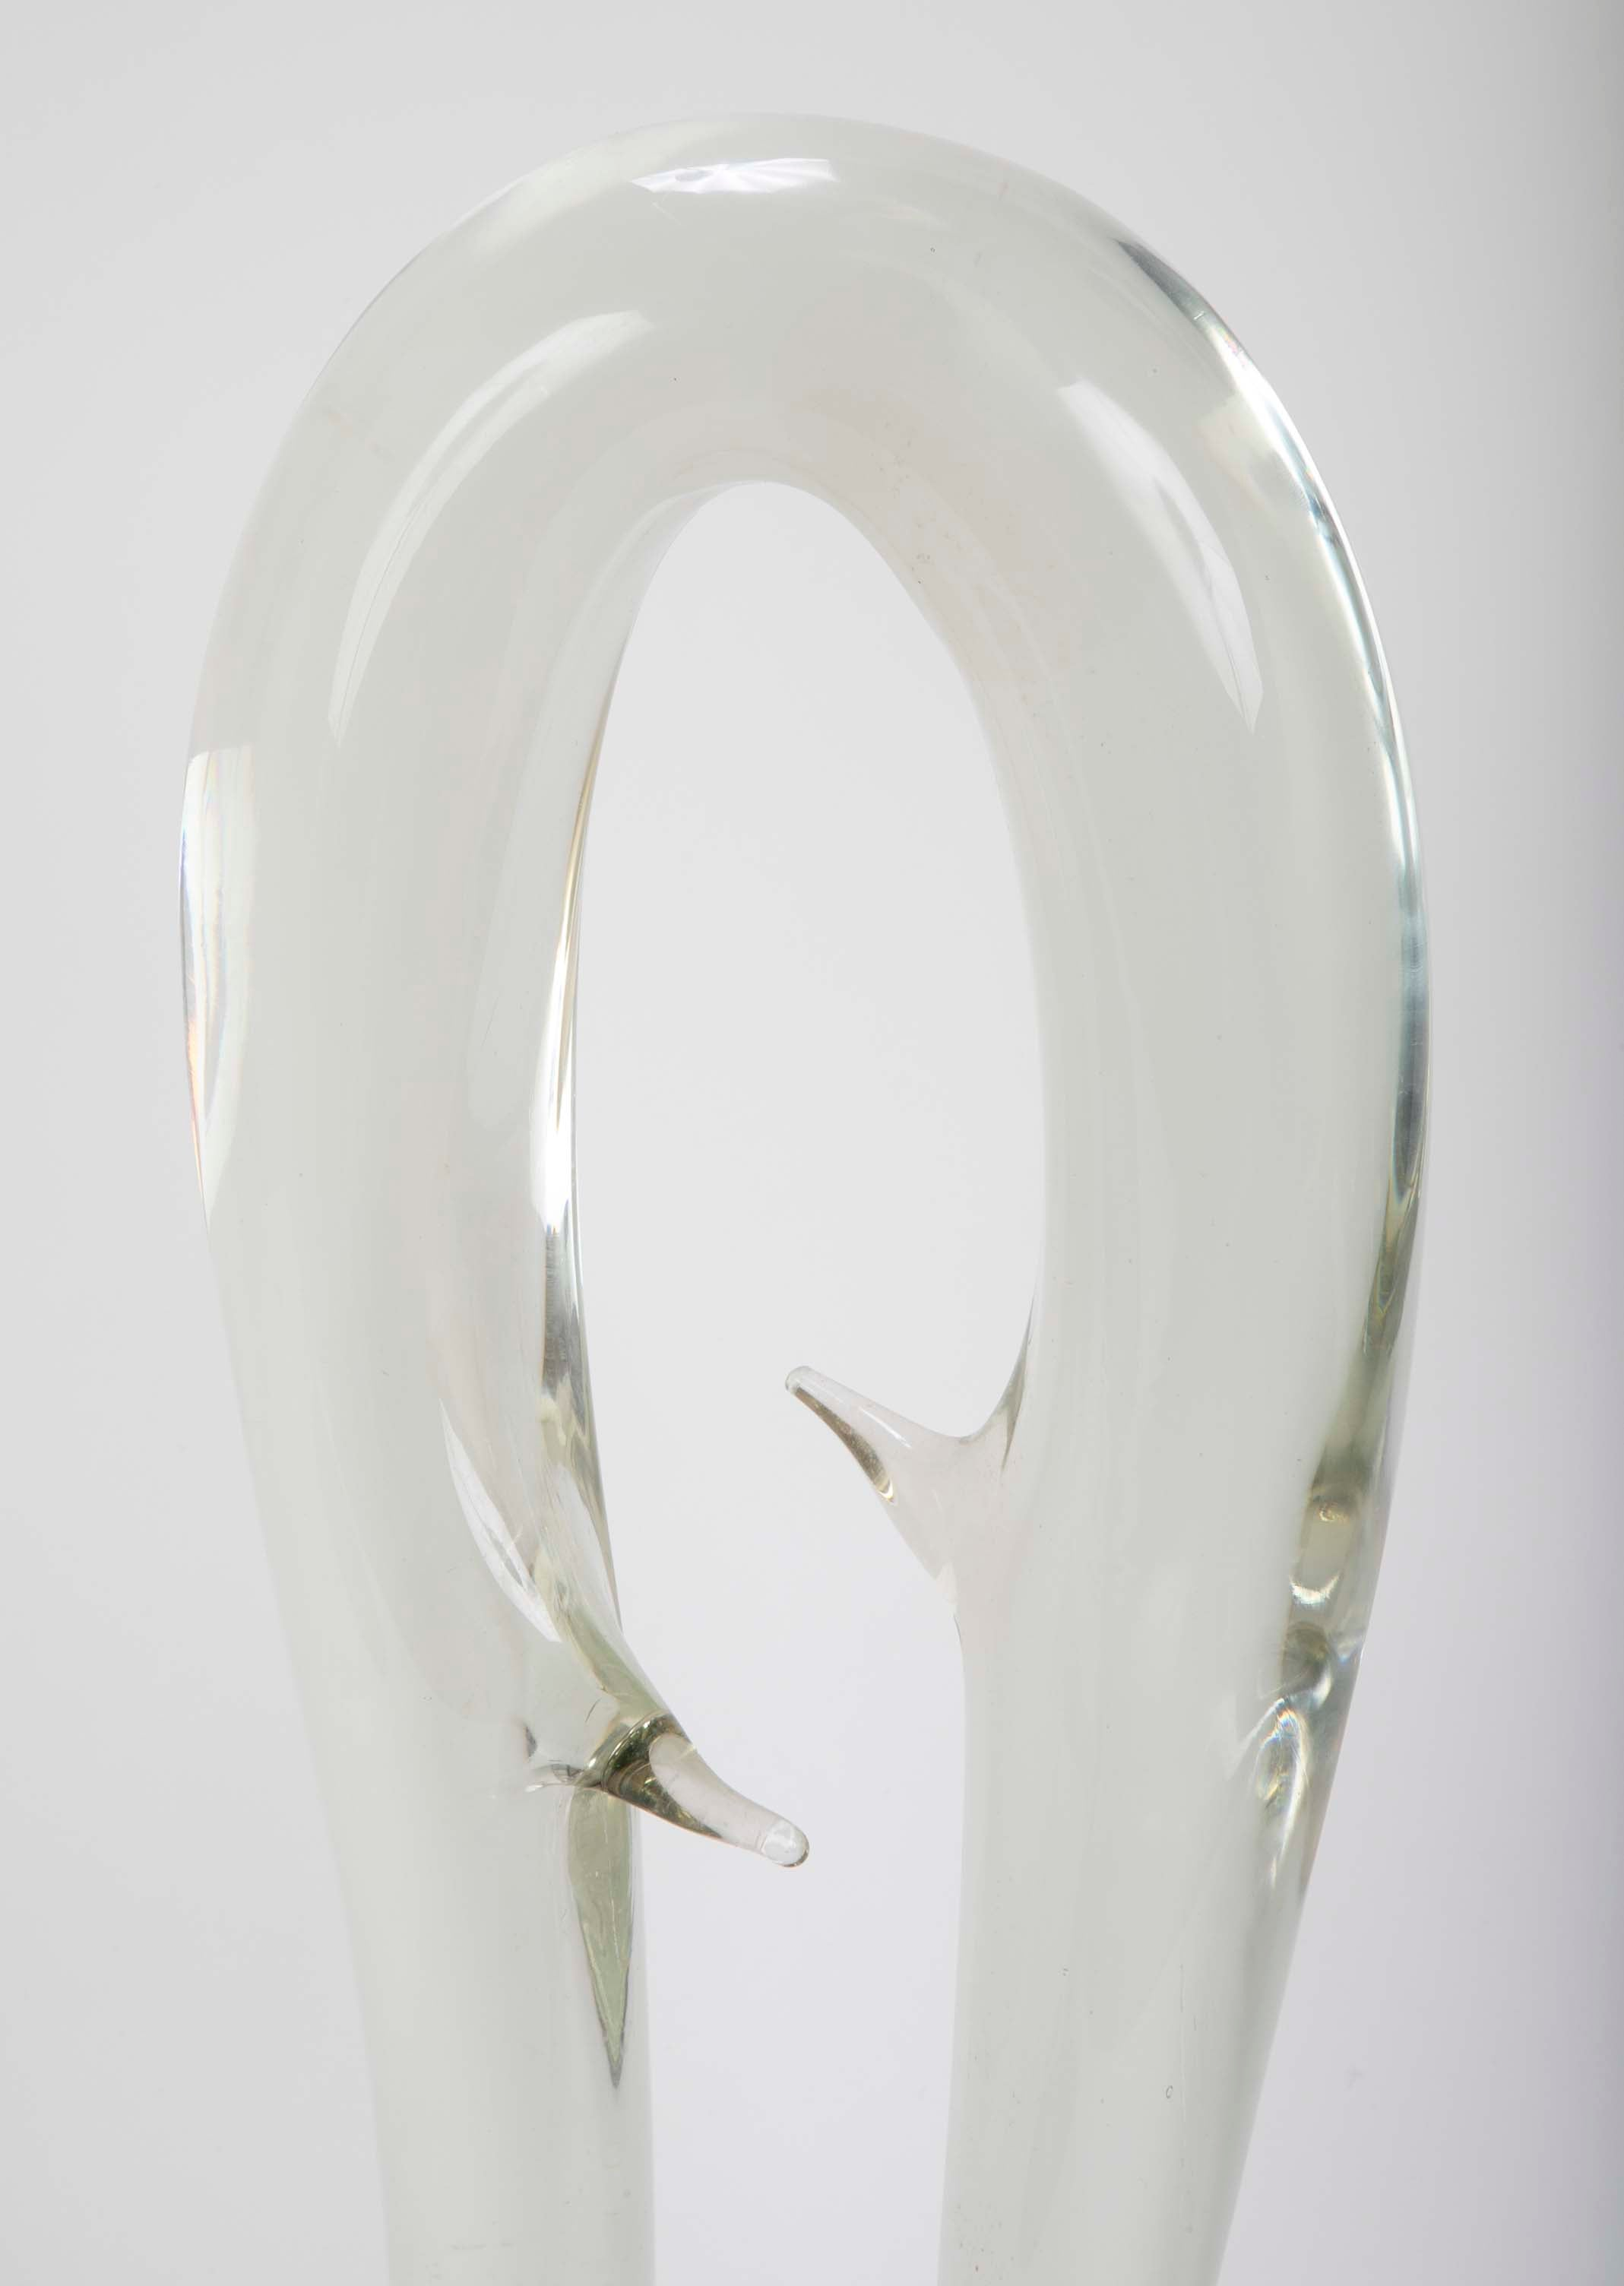 Mid-Century Glass Block Sculpture by Luciano Gaspari